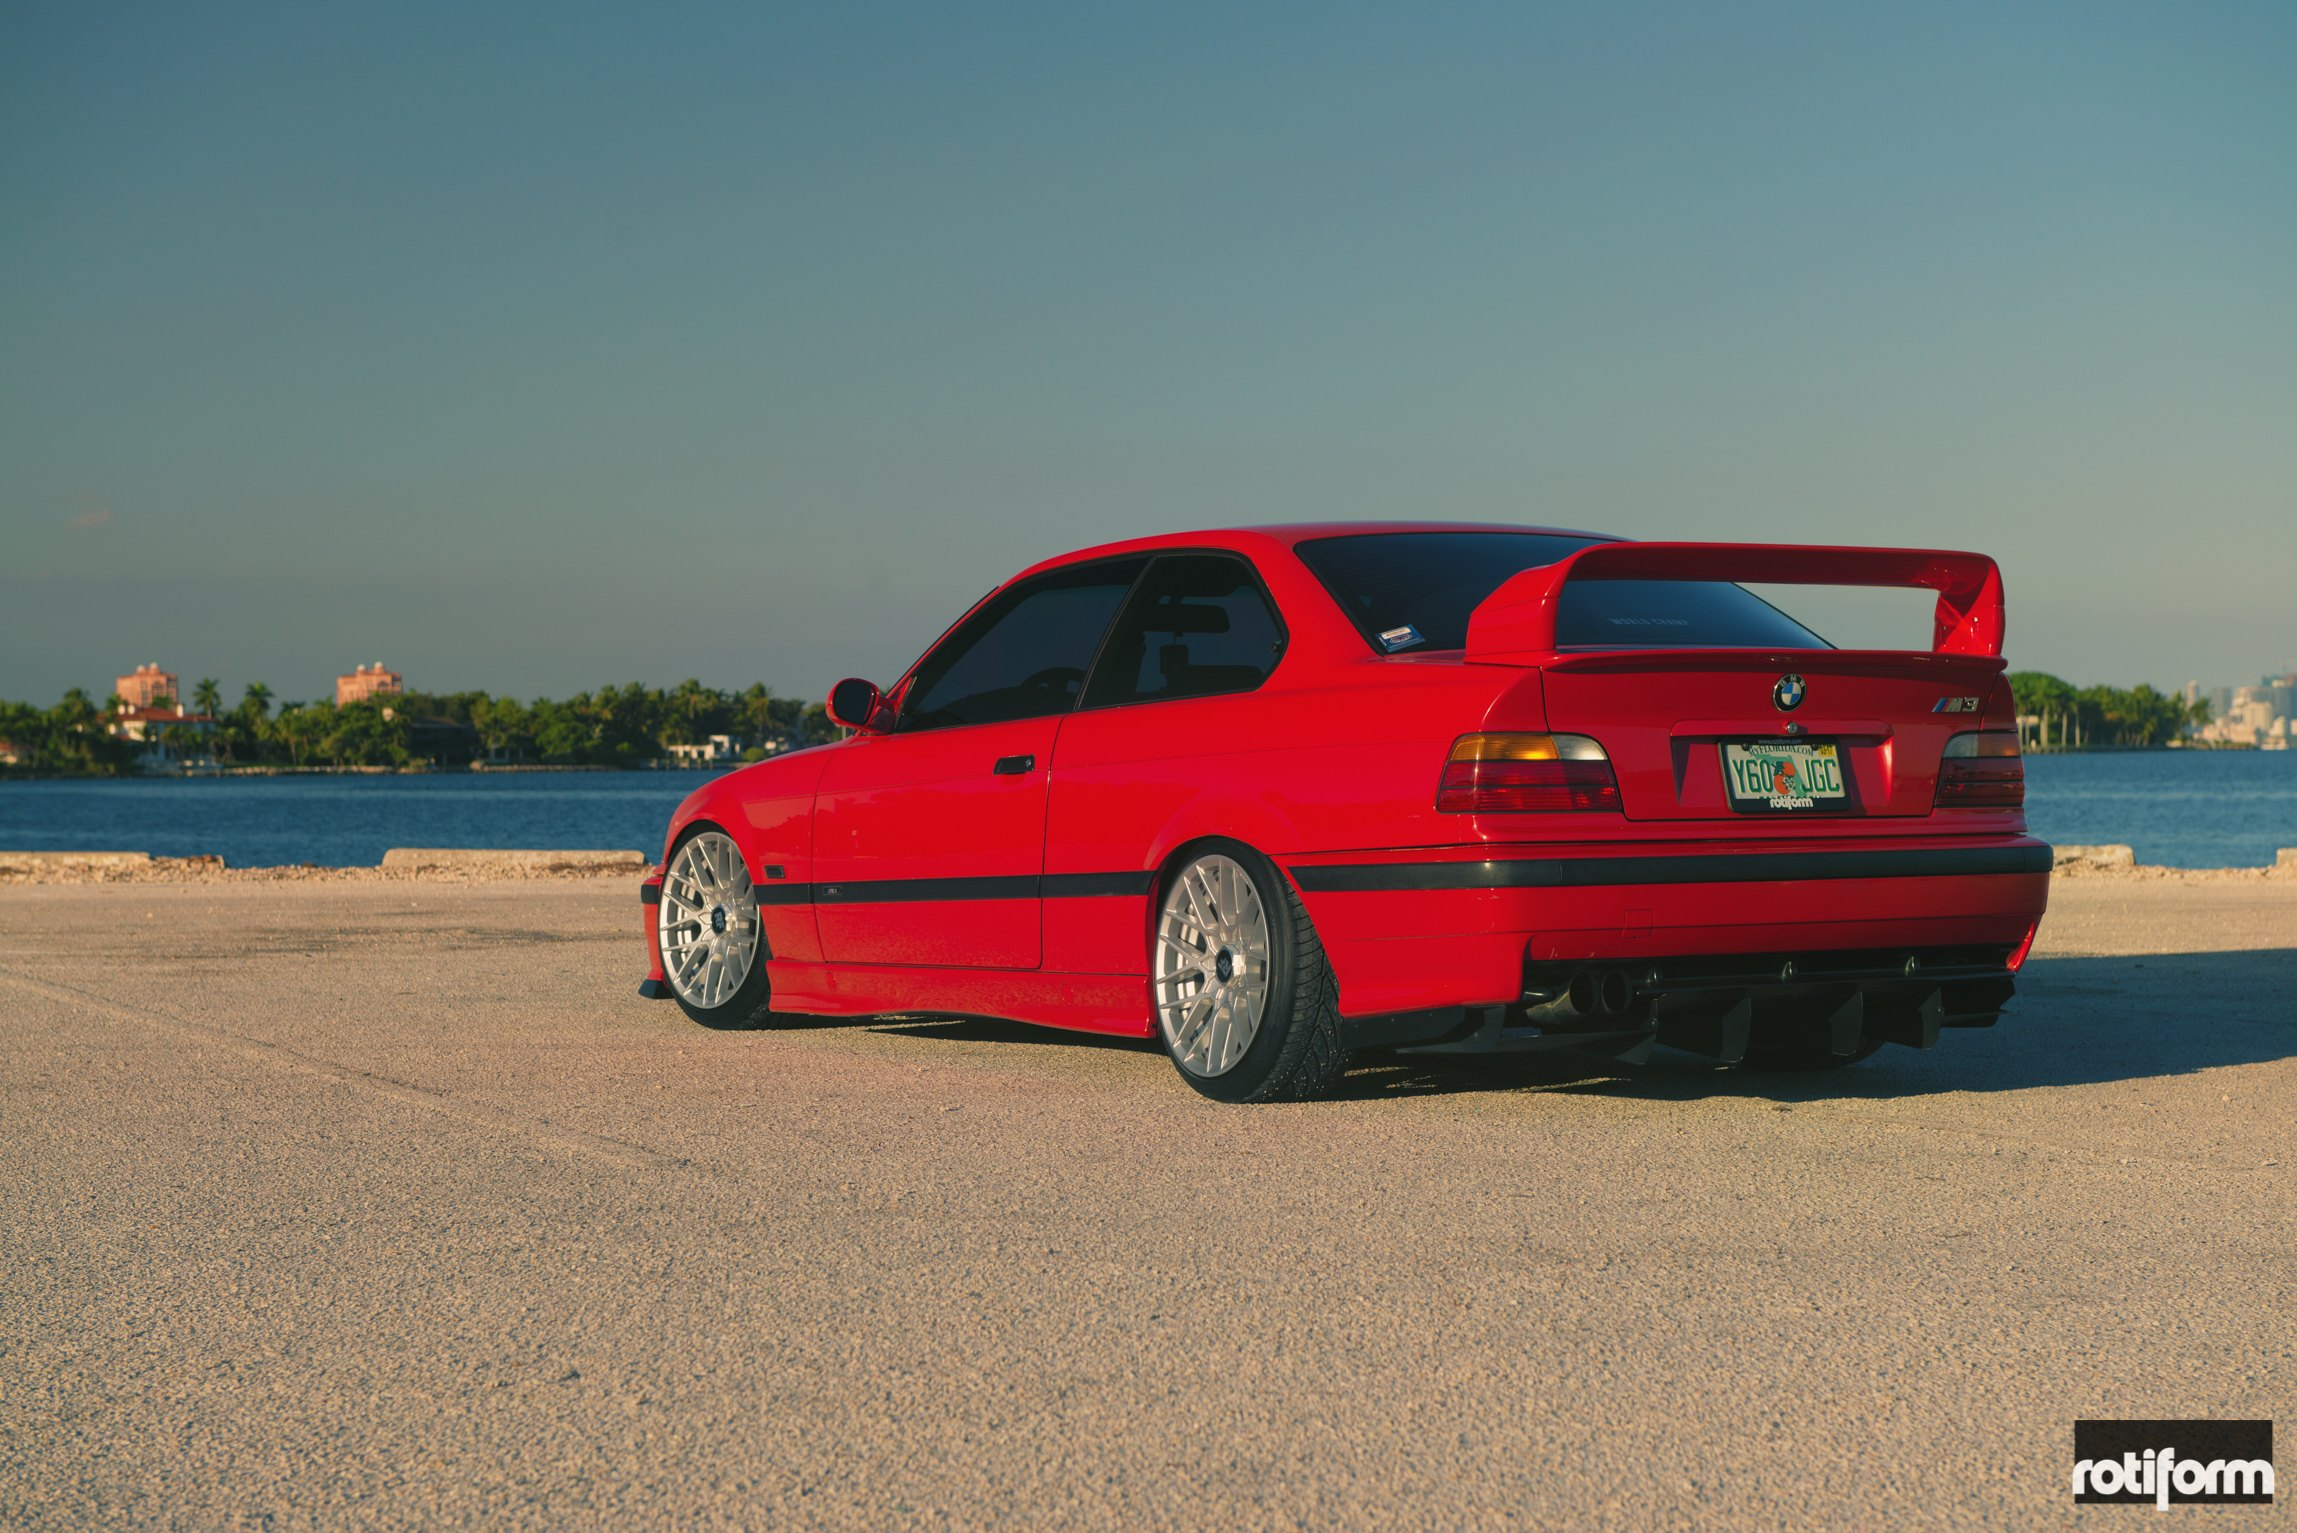 Classic Bmw M3 E36 In Bright Red Color Fitted With Stylish Rotiform Rims Carid Com Gallery